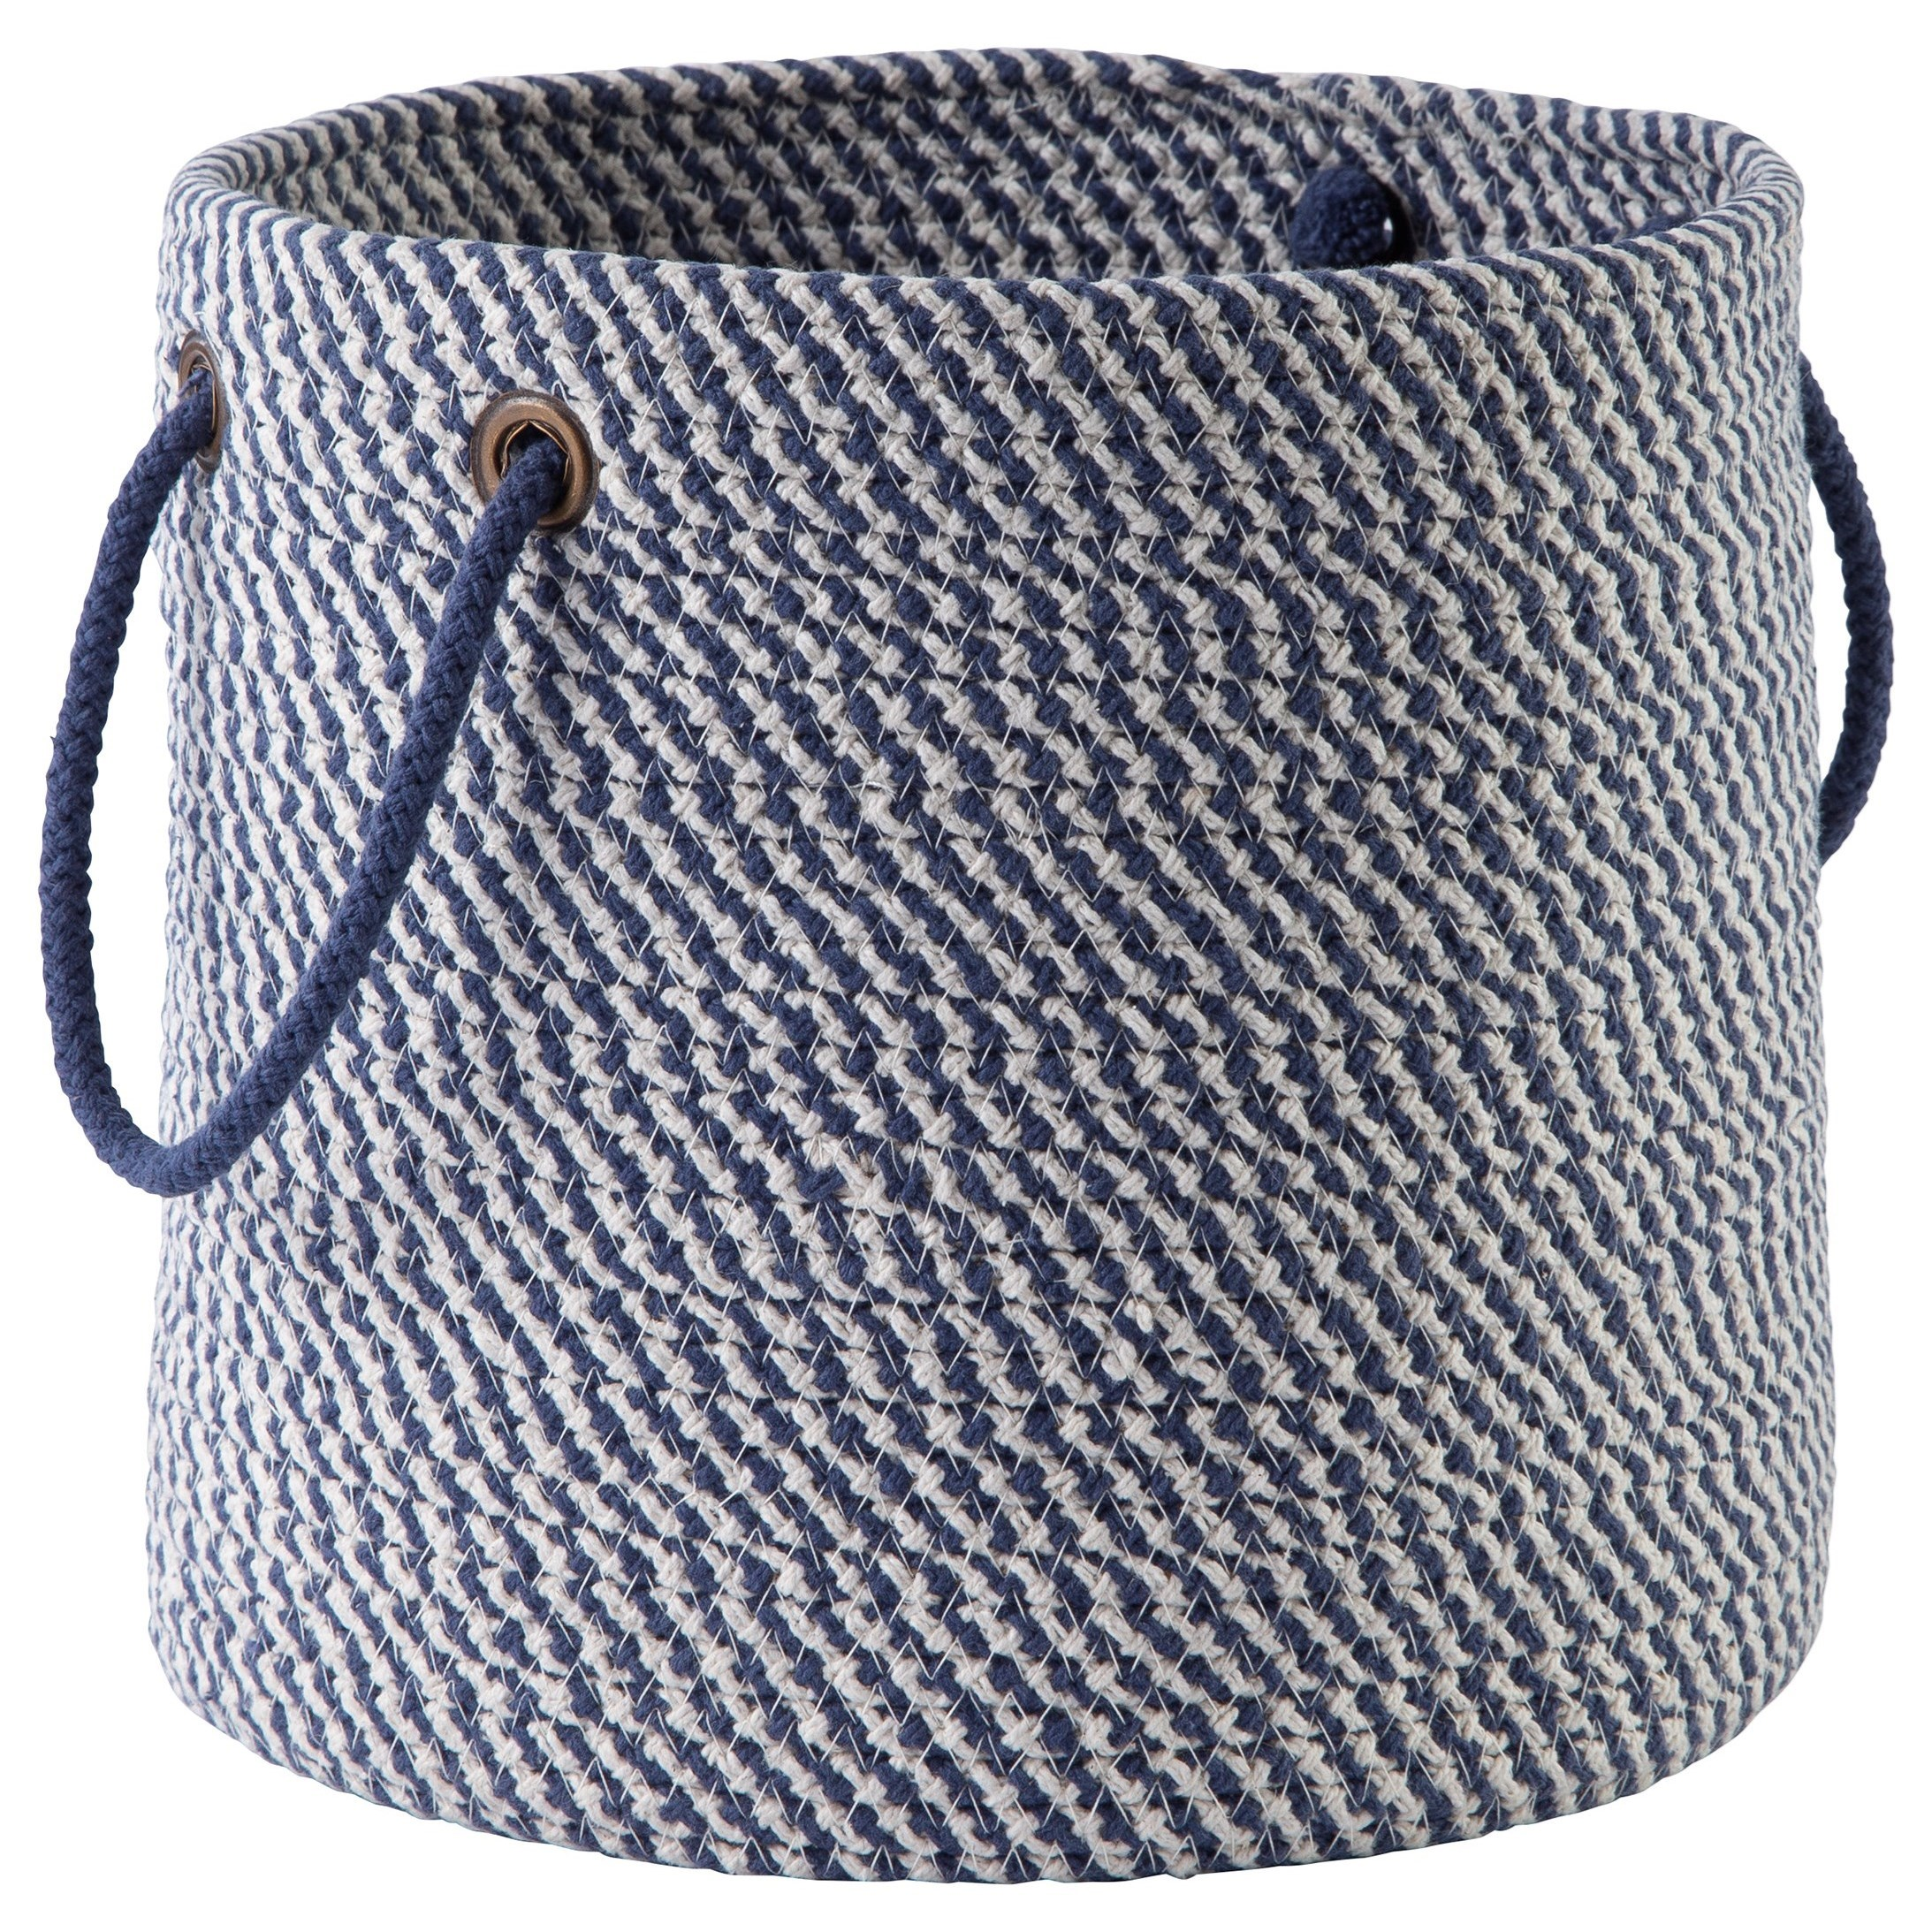 Accents Eider Navy Basket by Ashley (Signature Design) at Johnny Janosik